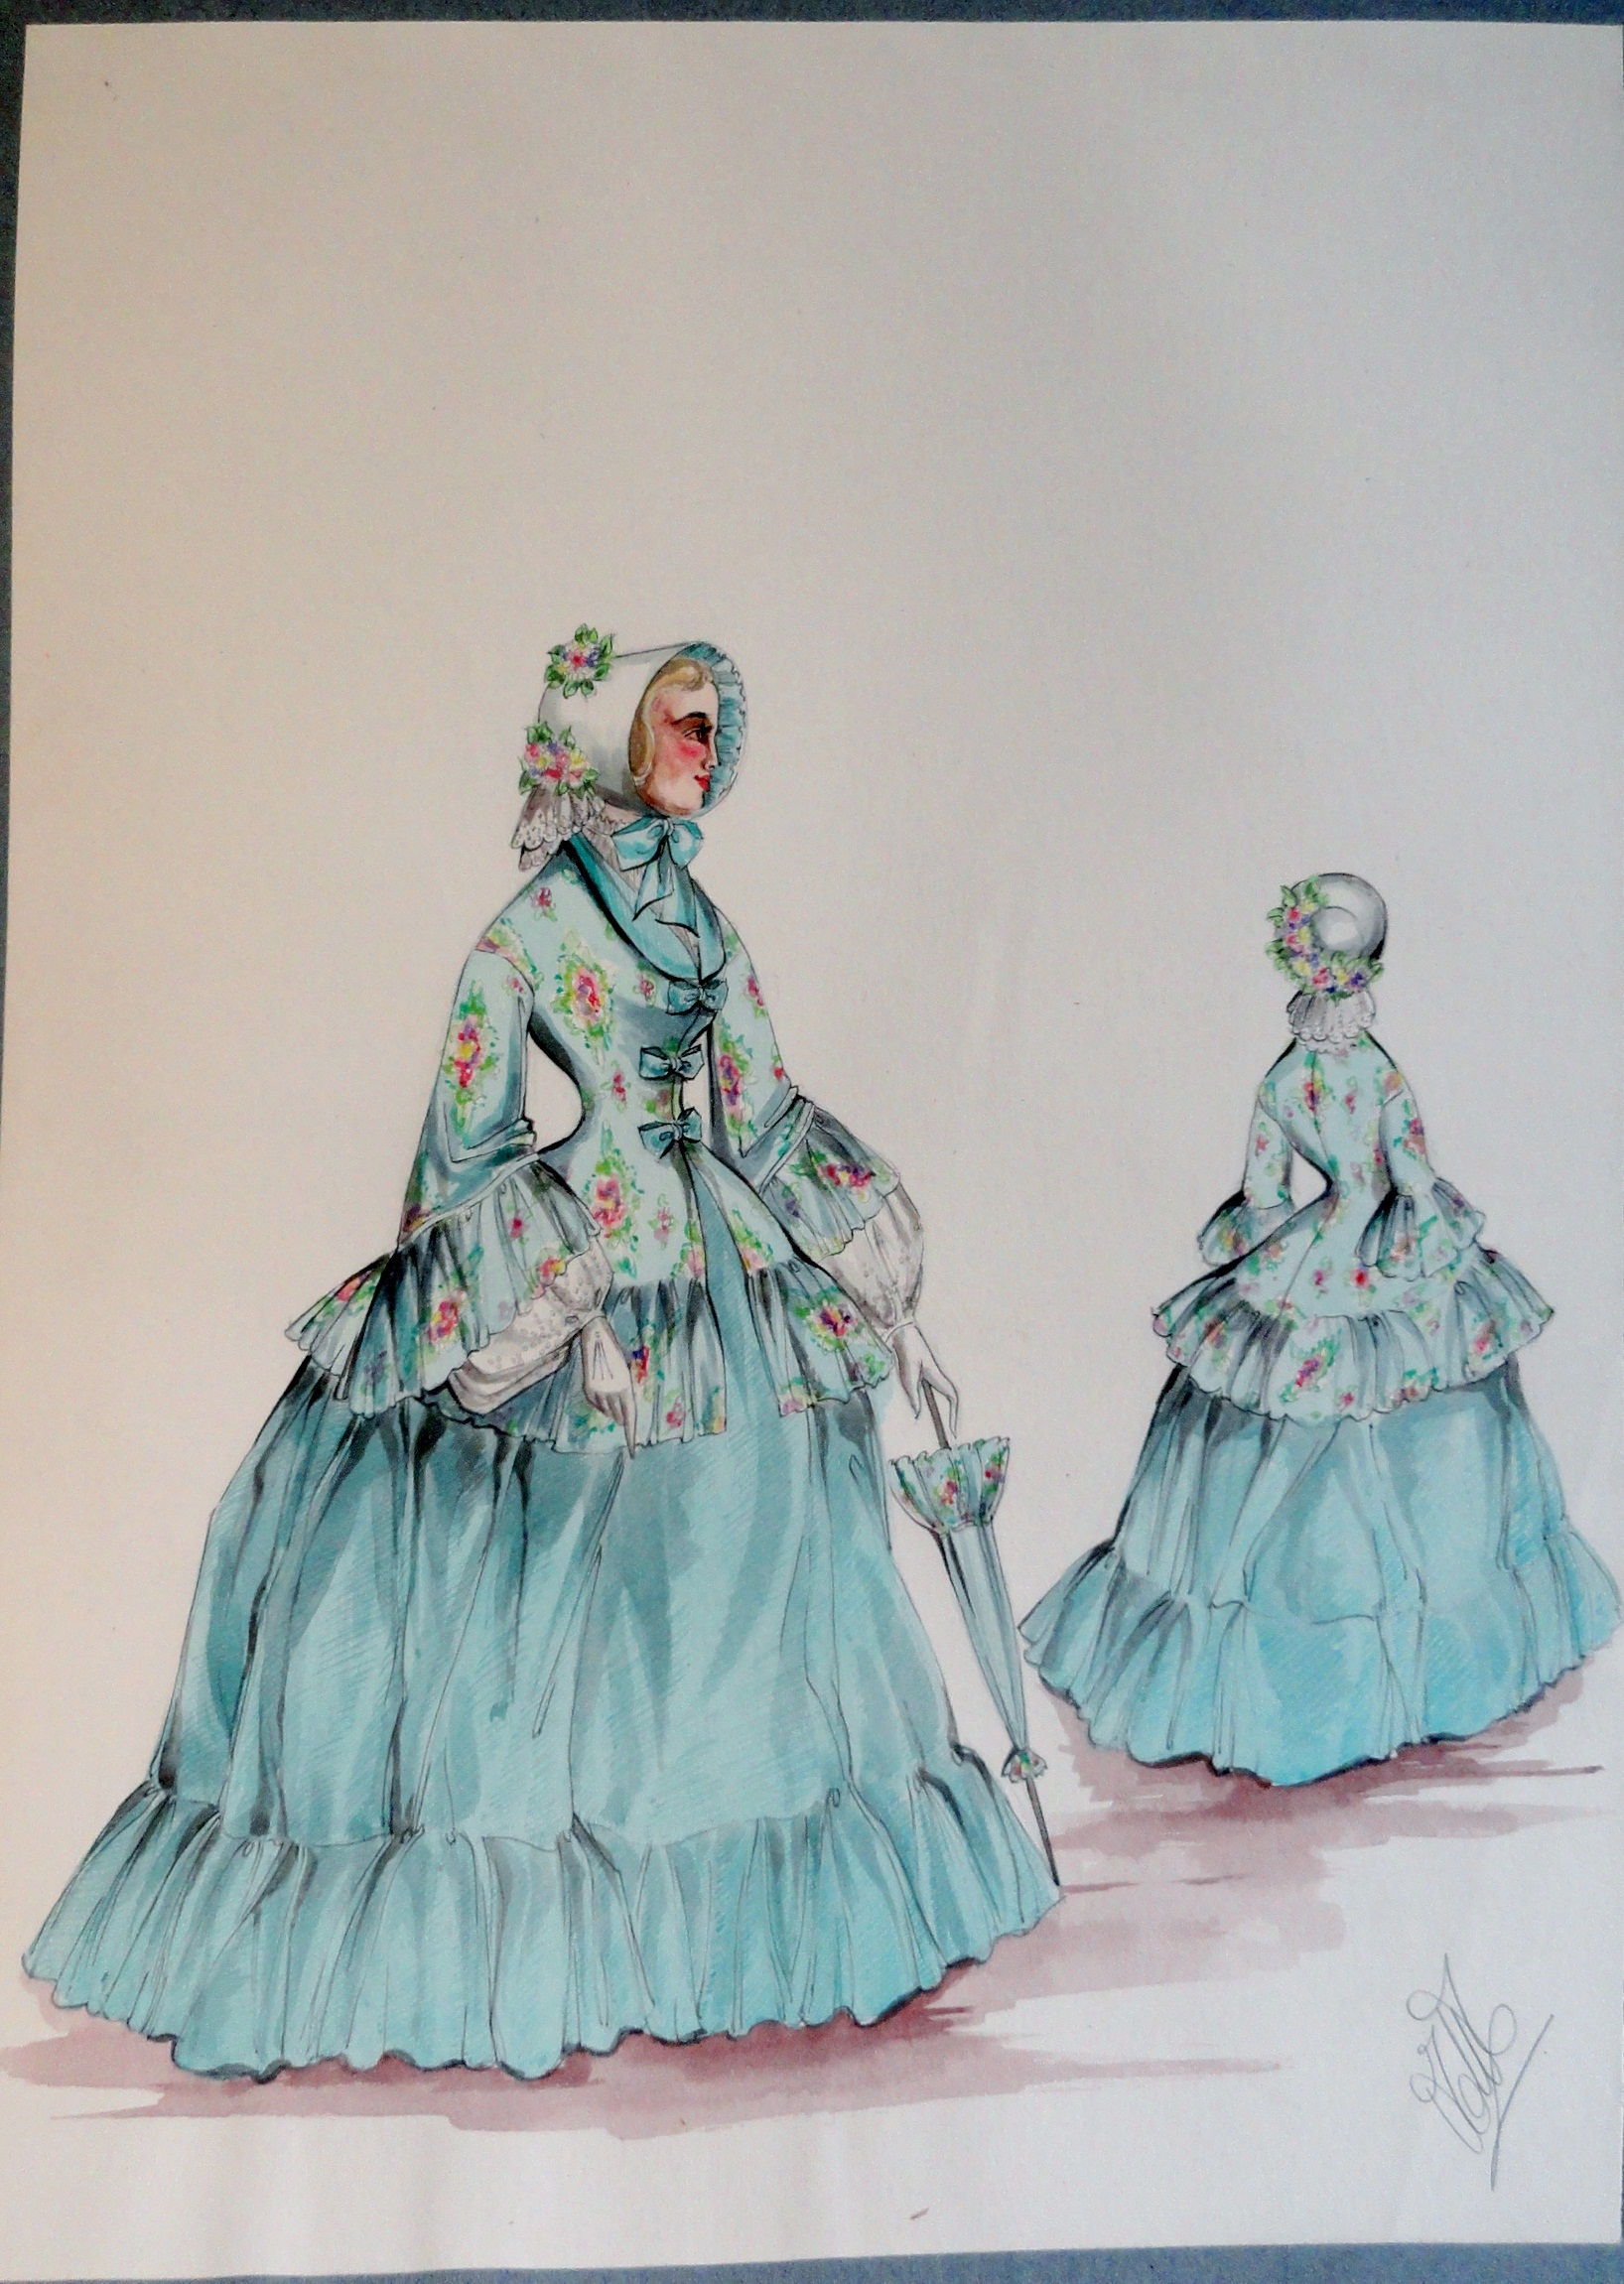 Rachel sister Annette in green gown and bonnet with parasol. Pen and ink and watercolor . From the Rachel Portfolio by Owen Hyde Clark.